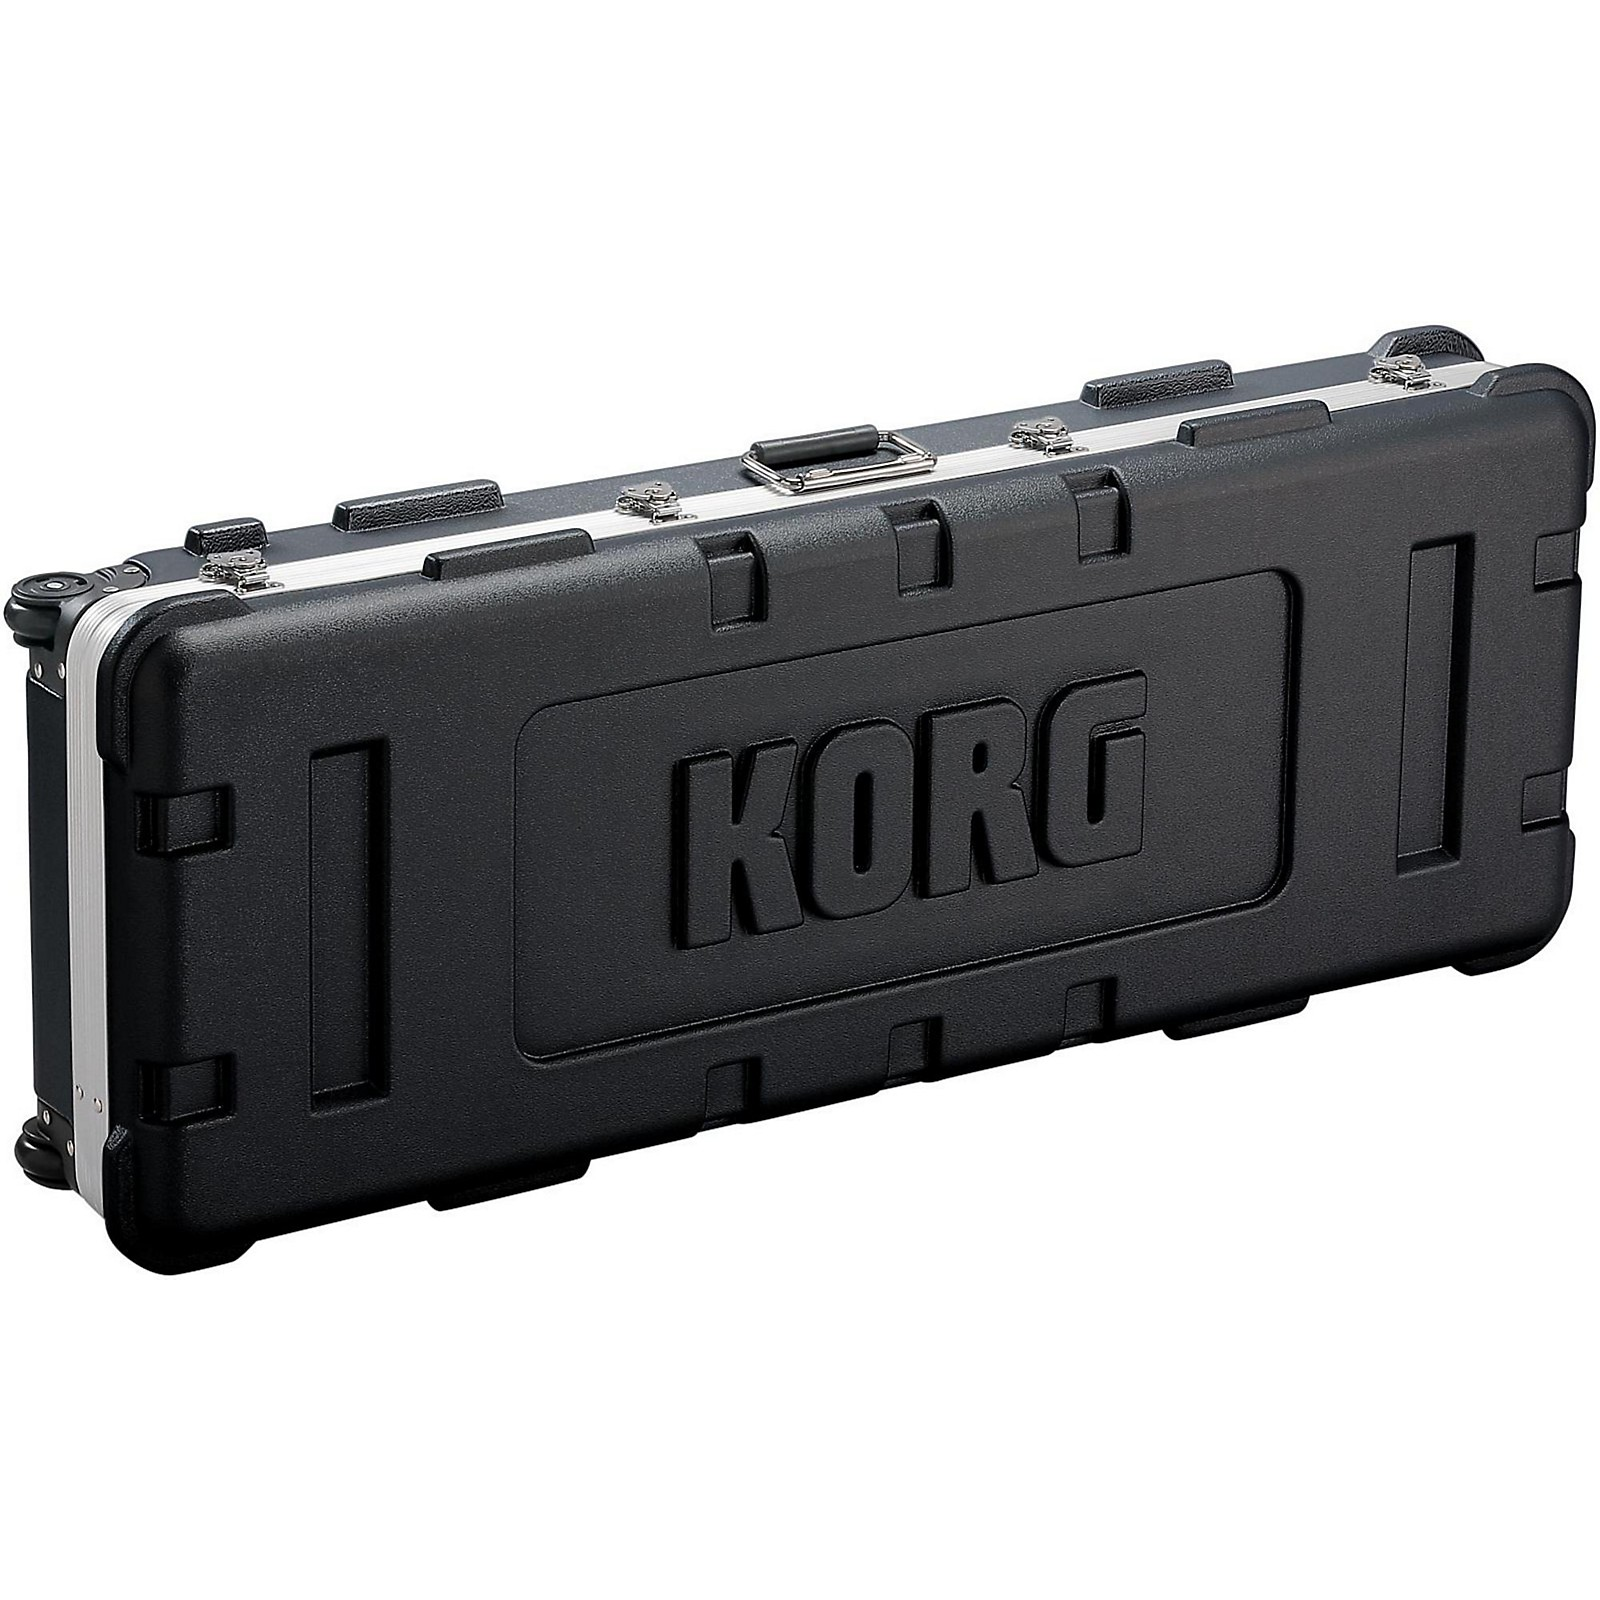 Korg Custom black hard shell case for 61 key Kronos